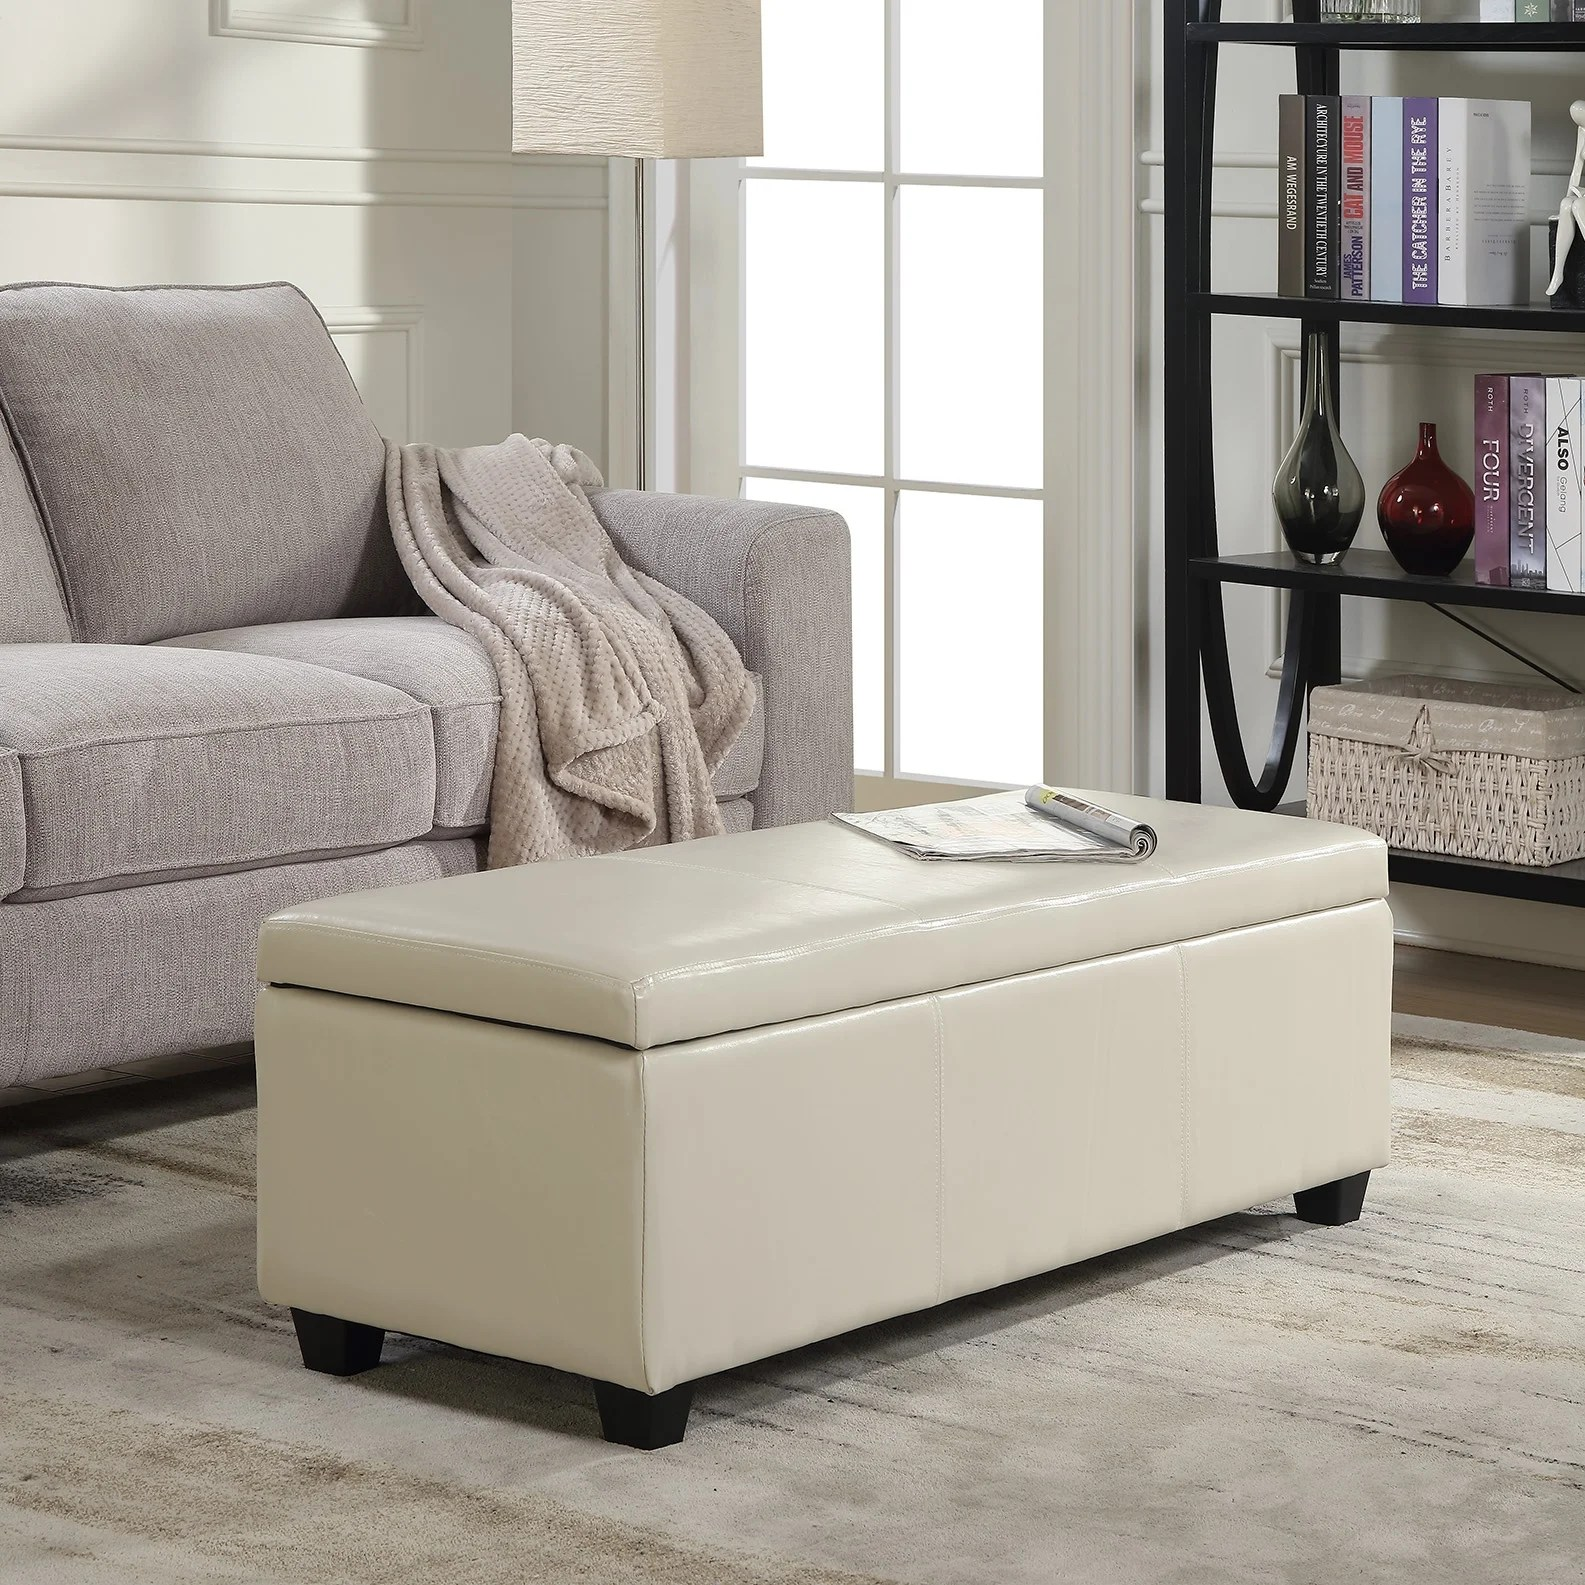 belleze ottoman storage bench room home faux leather 48 inch cream standard